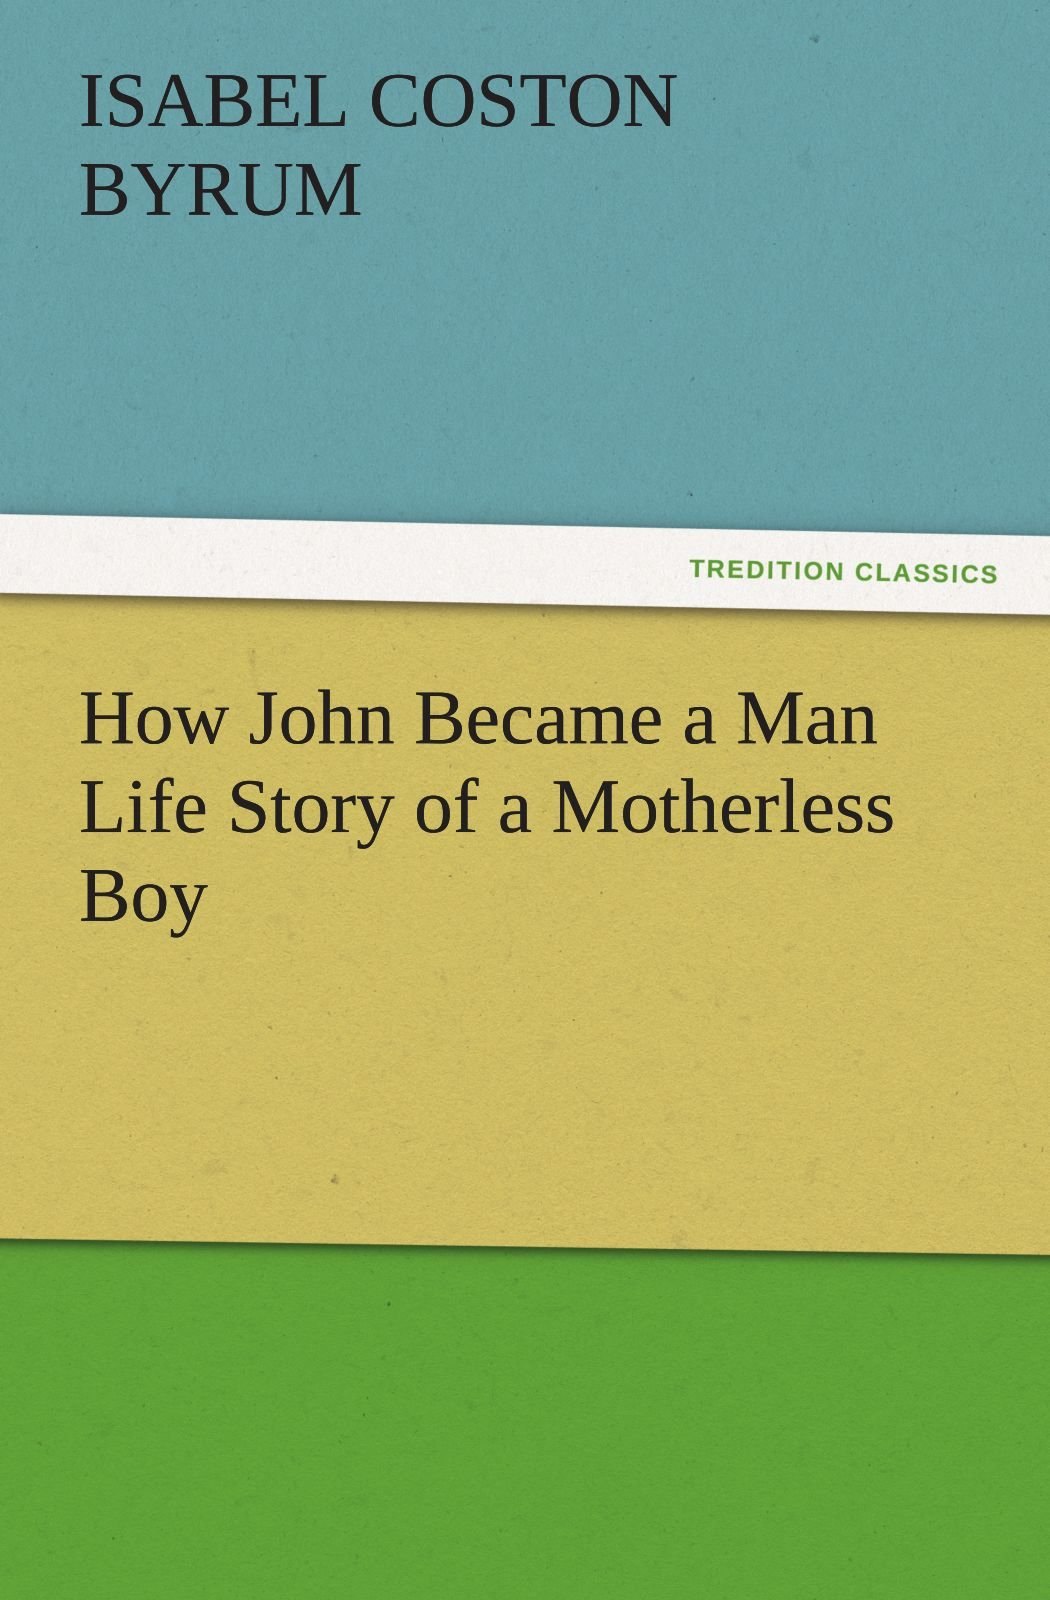 Read Online How John Became a Man Life Story of a Motherless Boy (TREDITION CLASSICS) PDF